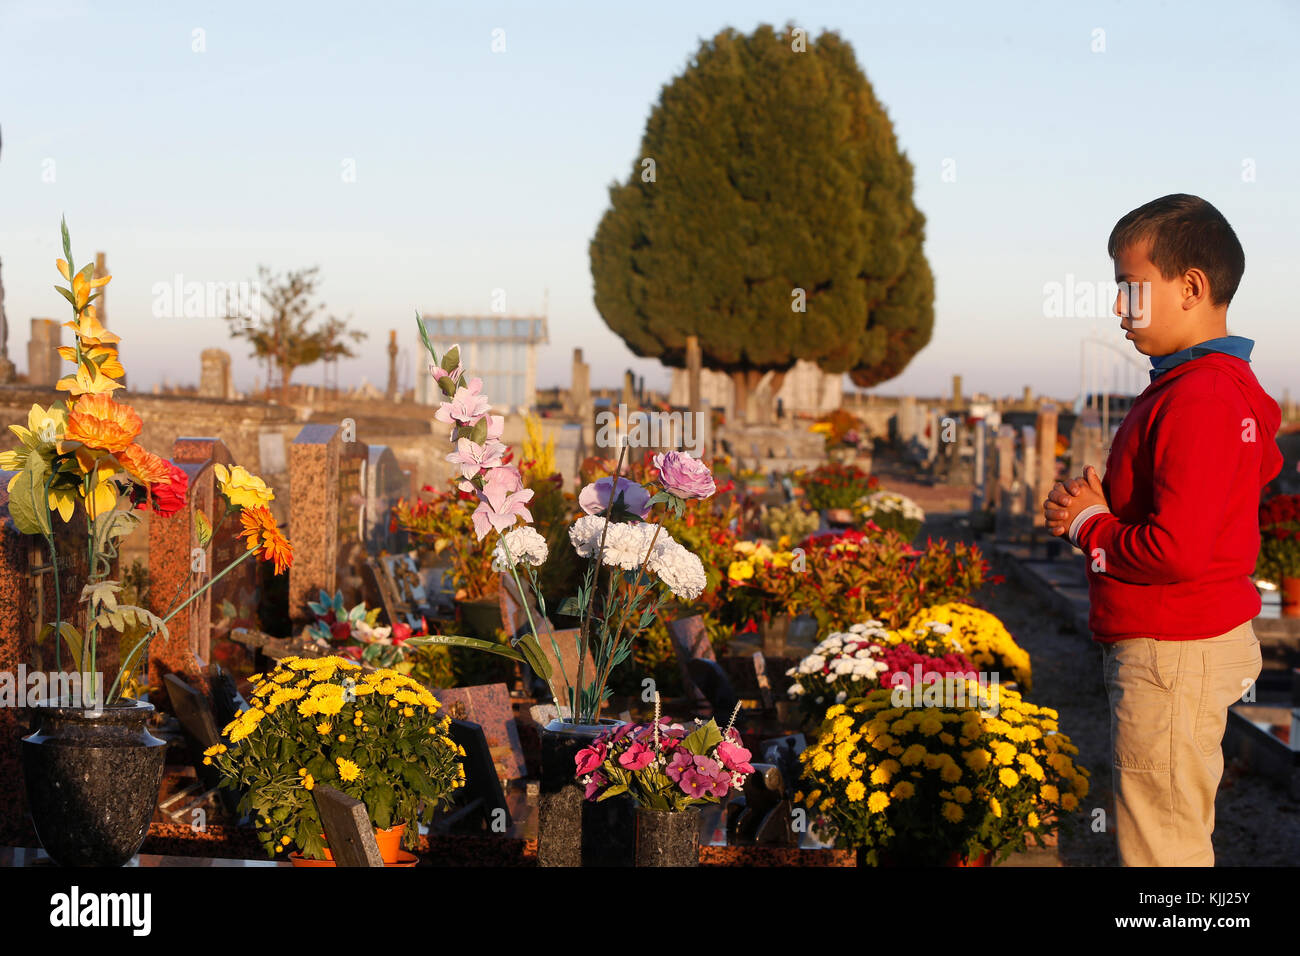 10-year-old boy in a graveyard. France. - Stock Image